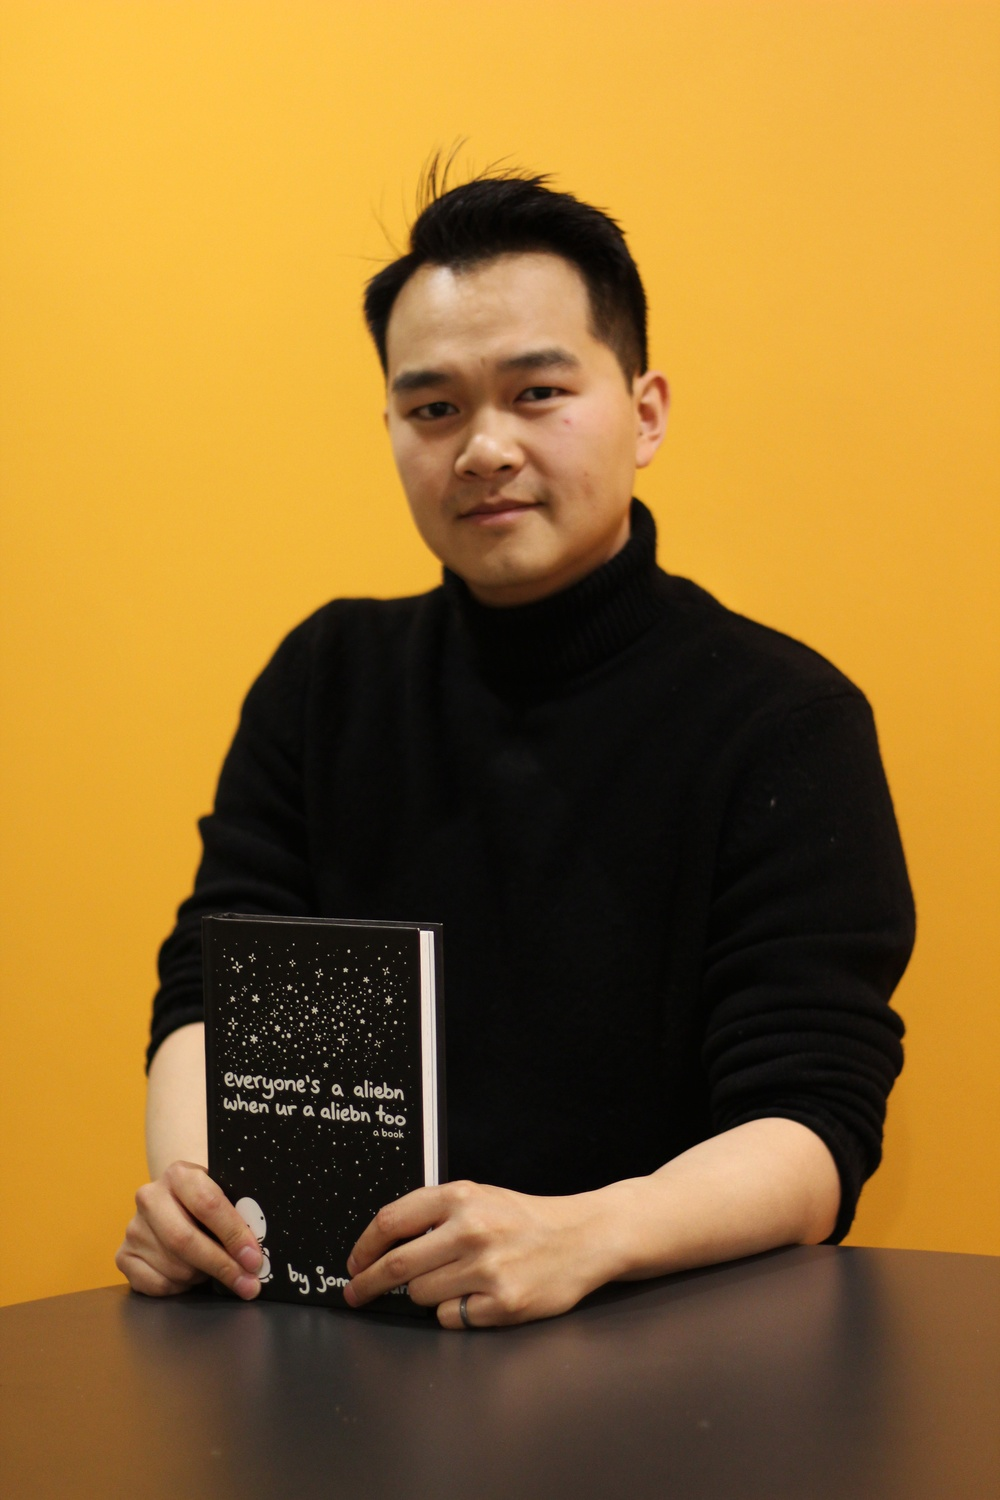 Jonny Sun with Book